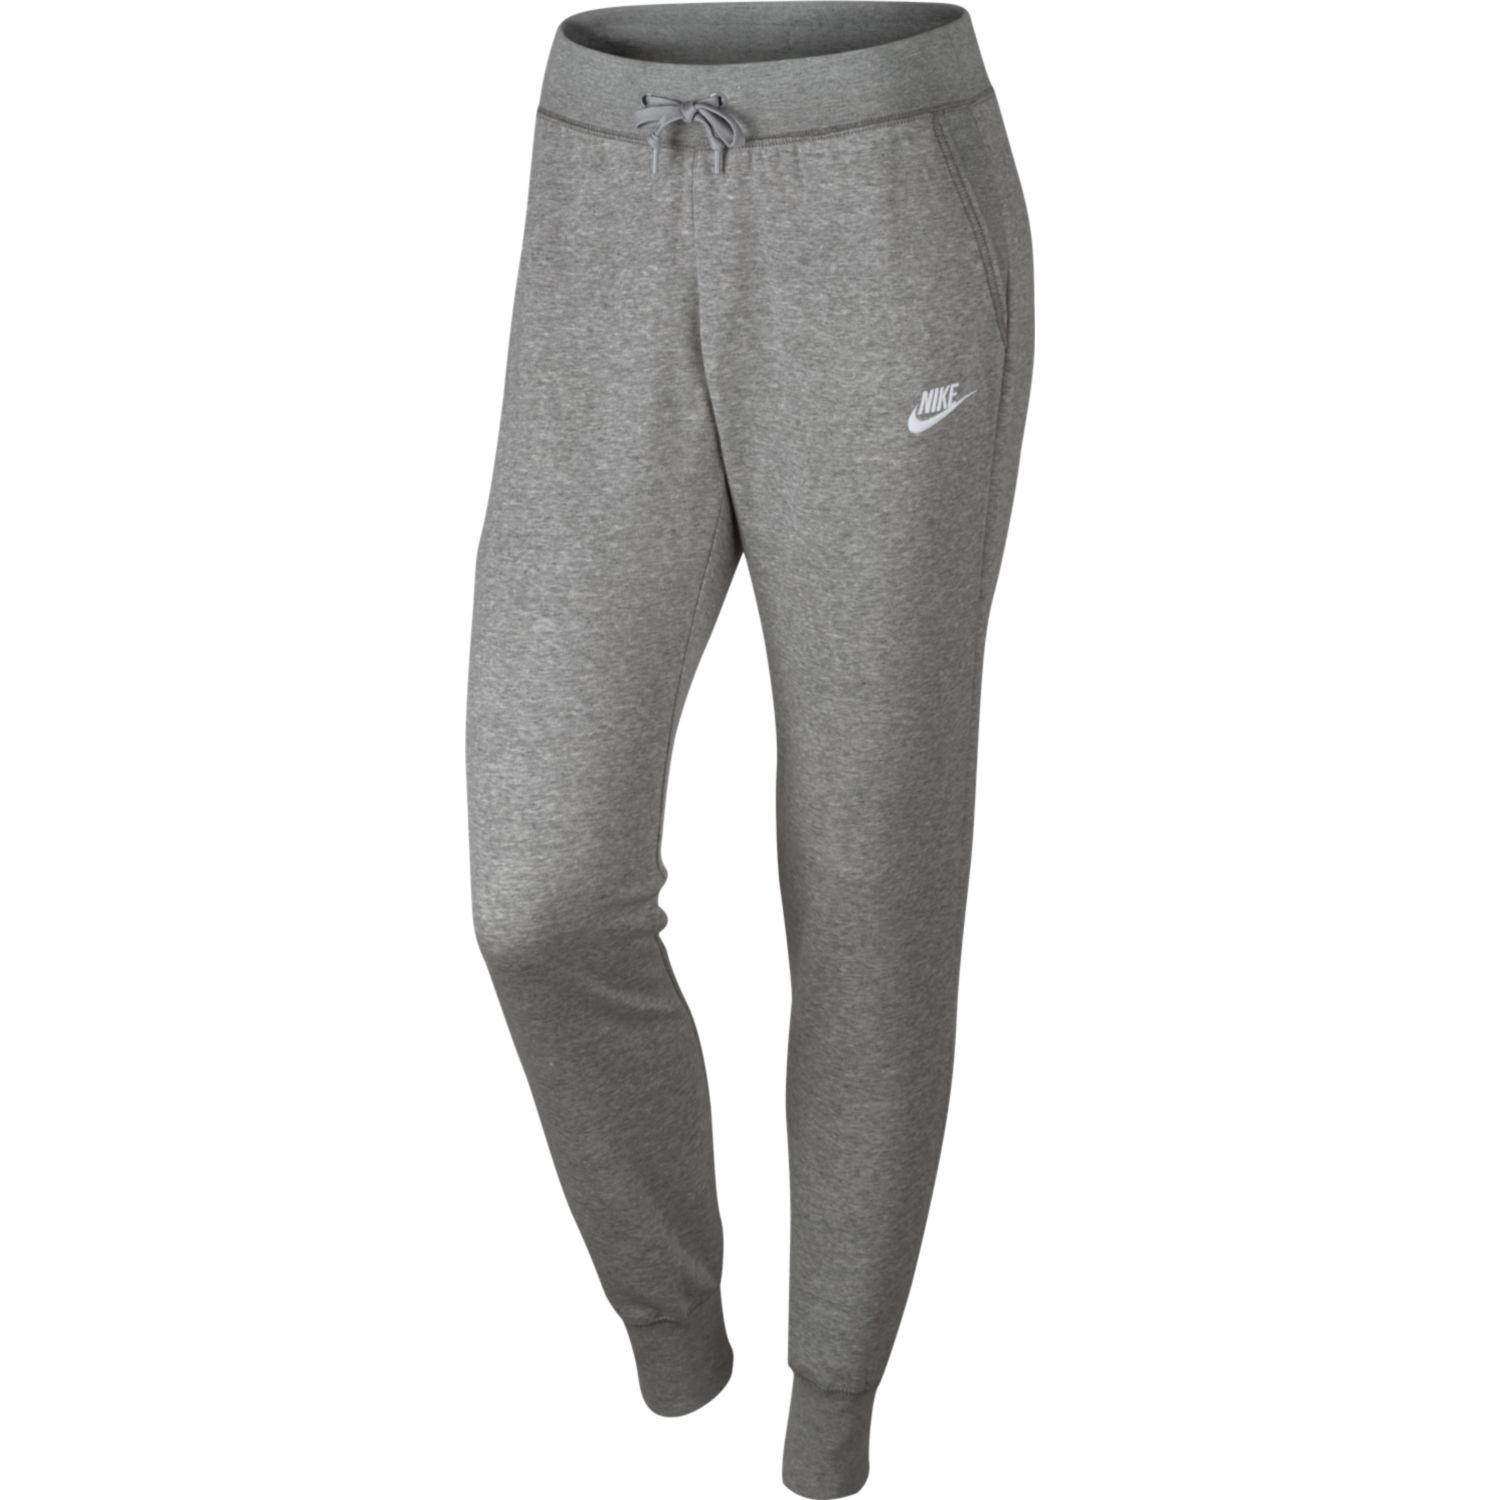 nike sportswear tight fleece womens sweatpants  grey